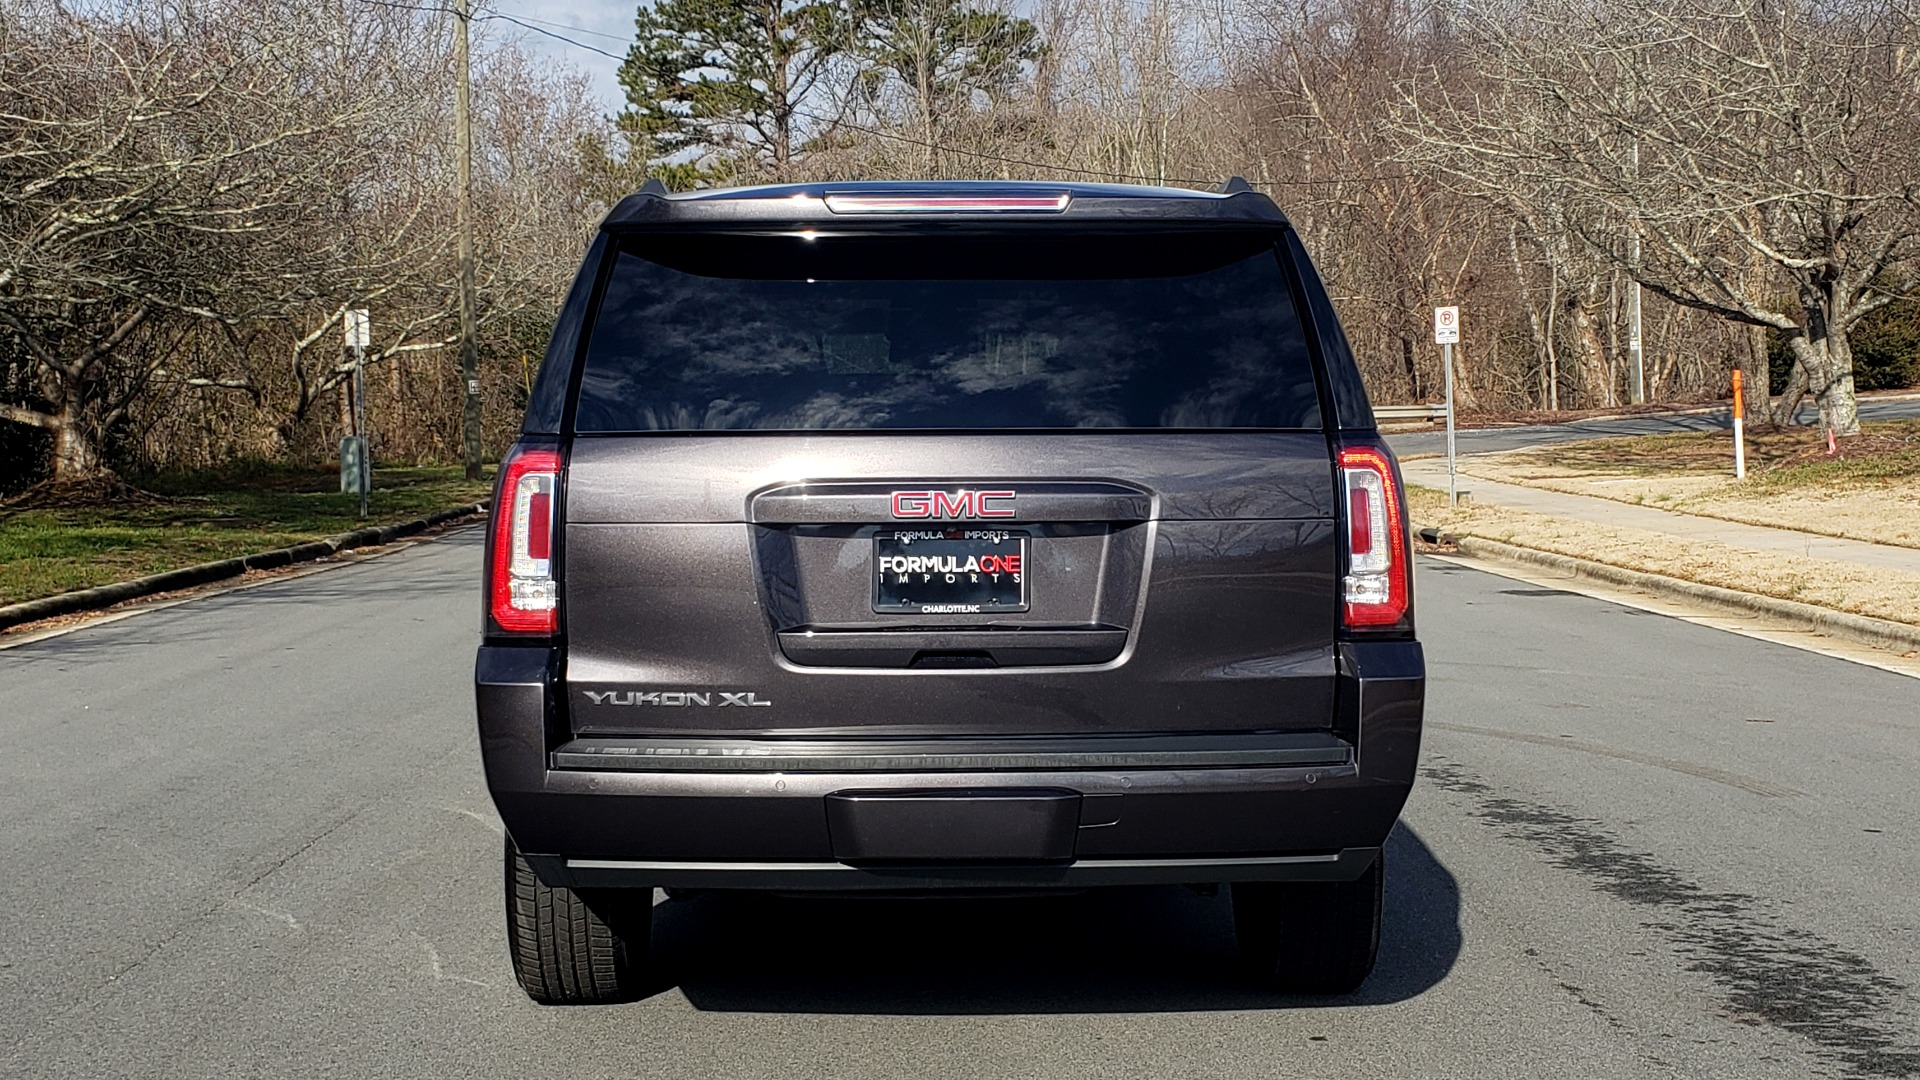 Used 2017 GMC YUKON XL SLT 4X4 / NAV / SUNROOF / BOSE / 3-ROW / REARVIEW for sale Sold at Formula Imports in Charlotte NC 28227 31